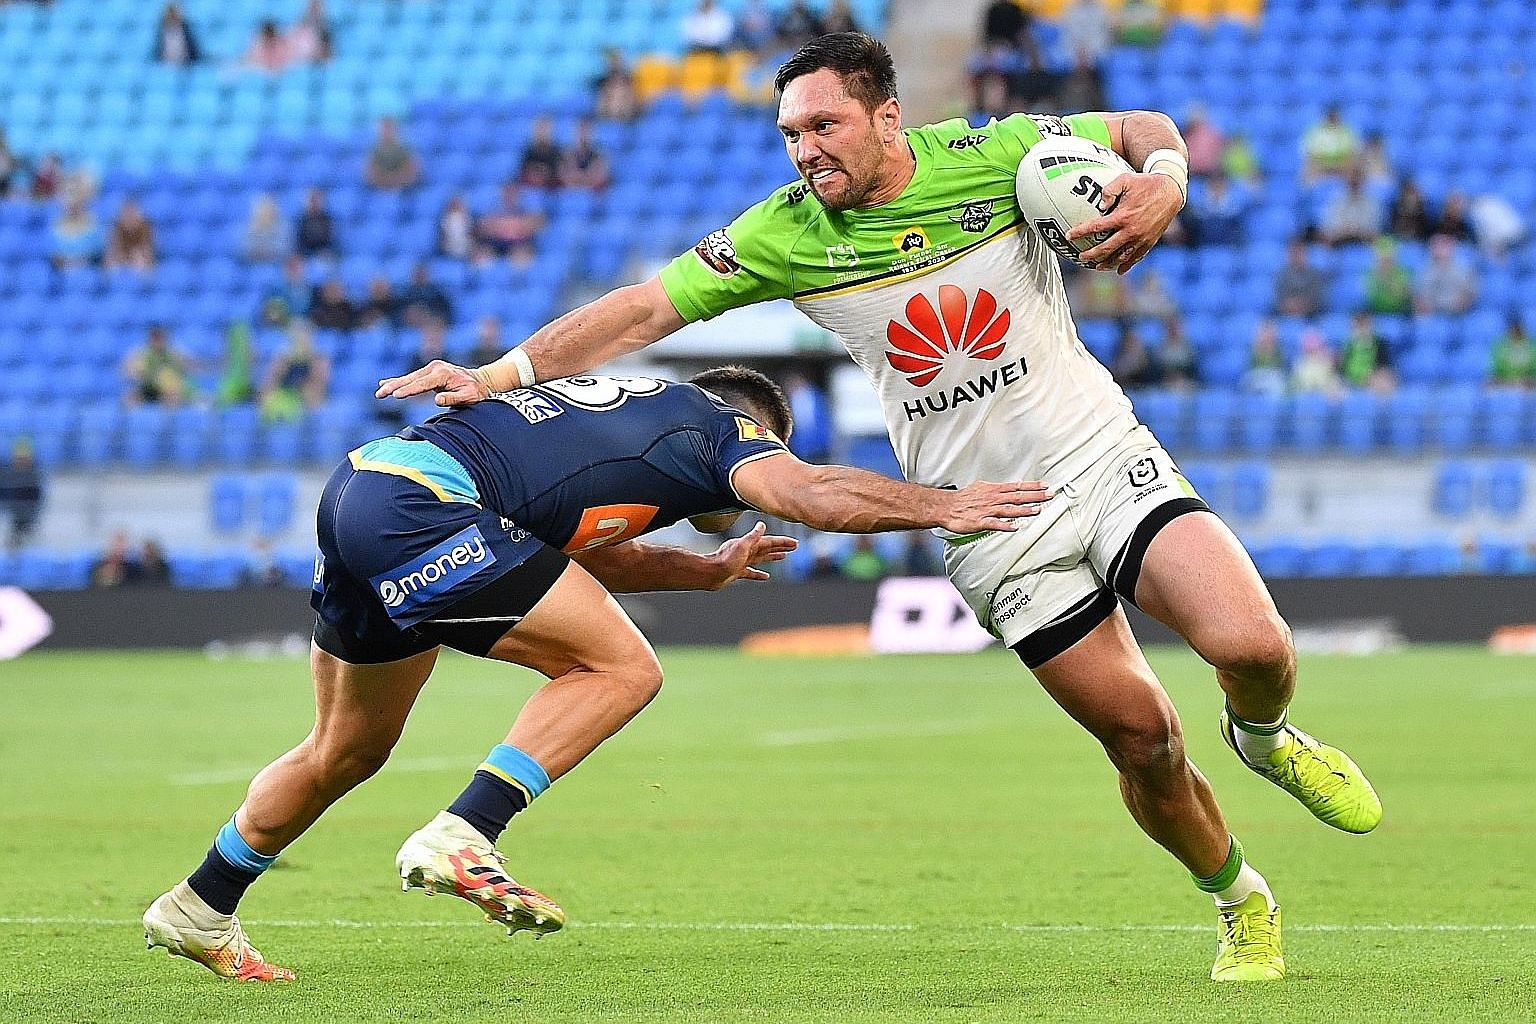 Huawei has backed the Canberra Raiders for almost a decade, with its logo and name on the front of the playing kit. PHOTO: EPA-EFE